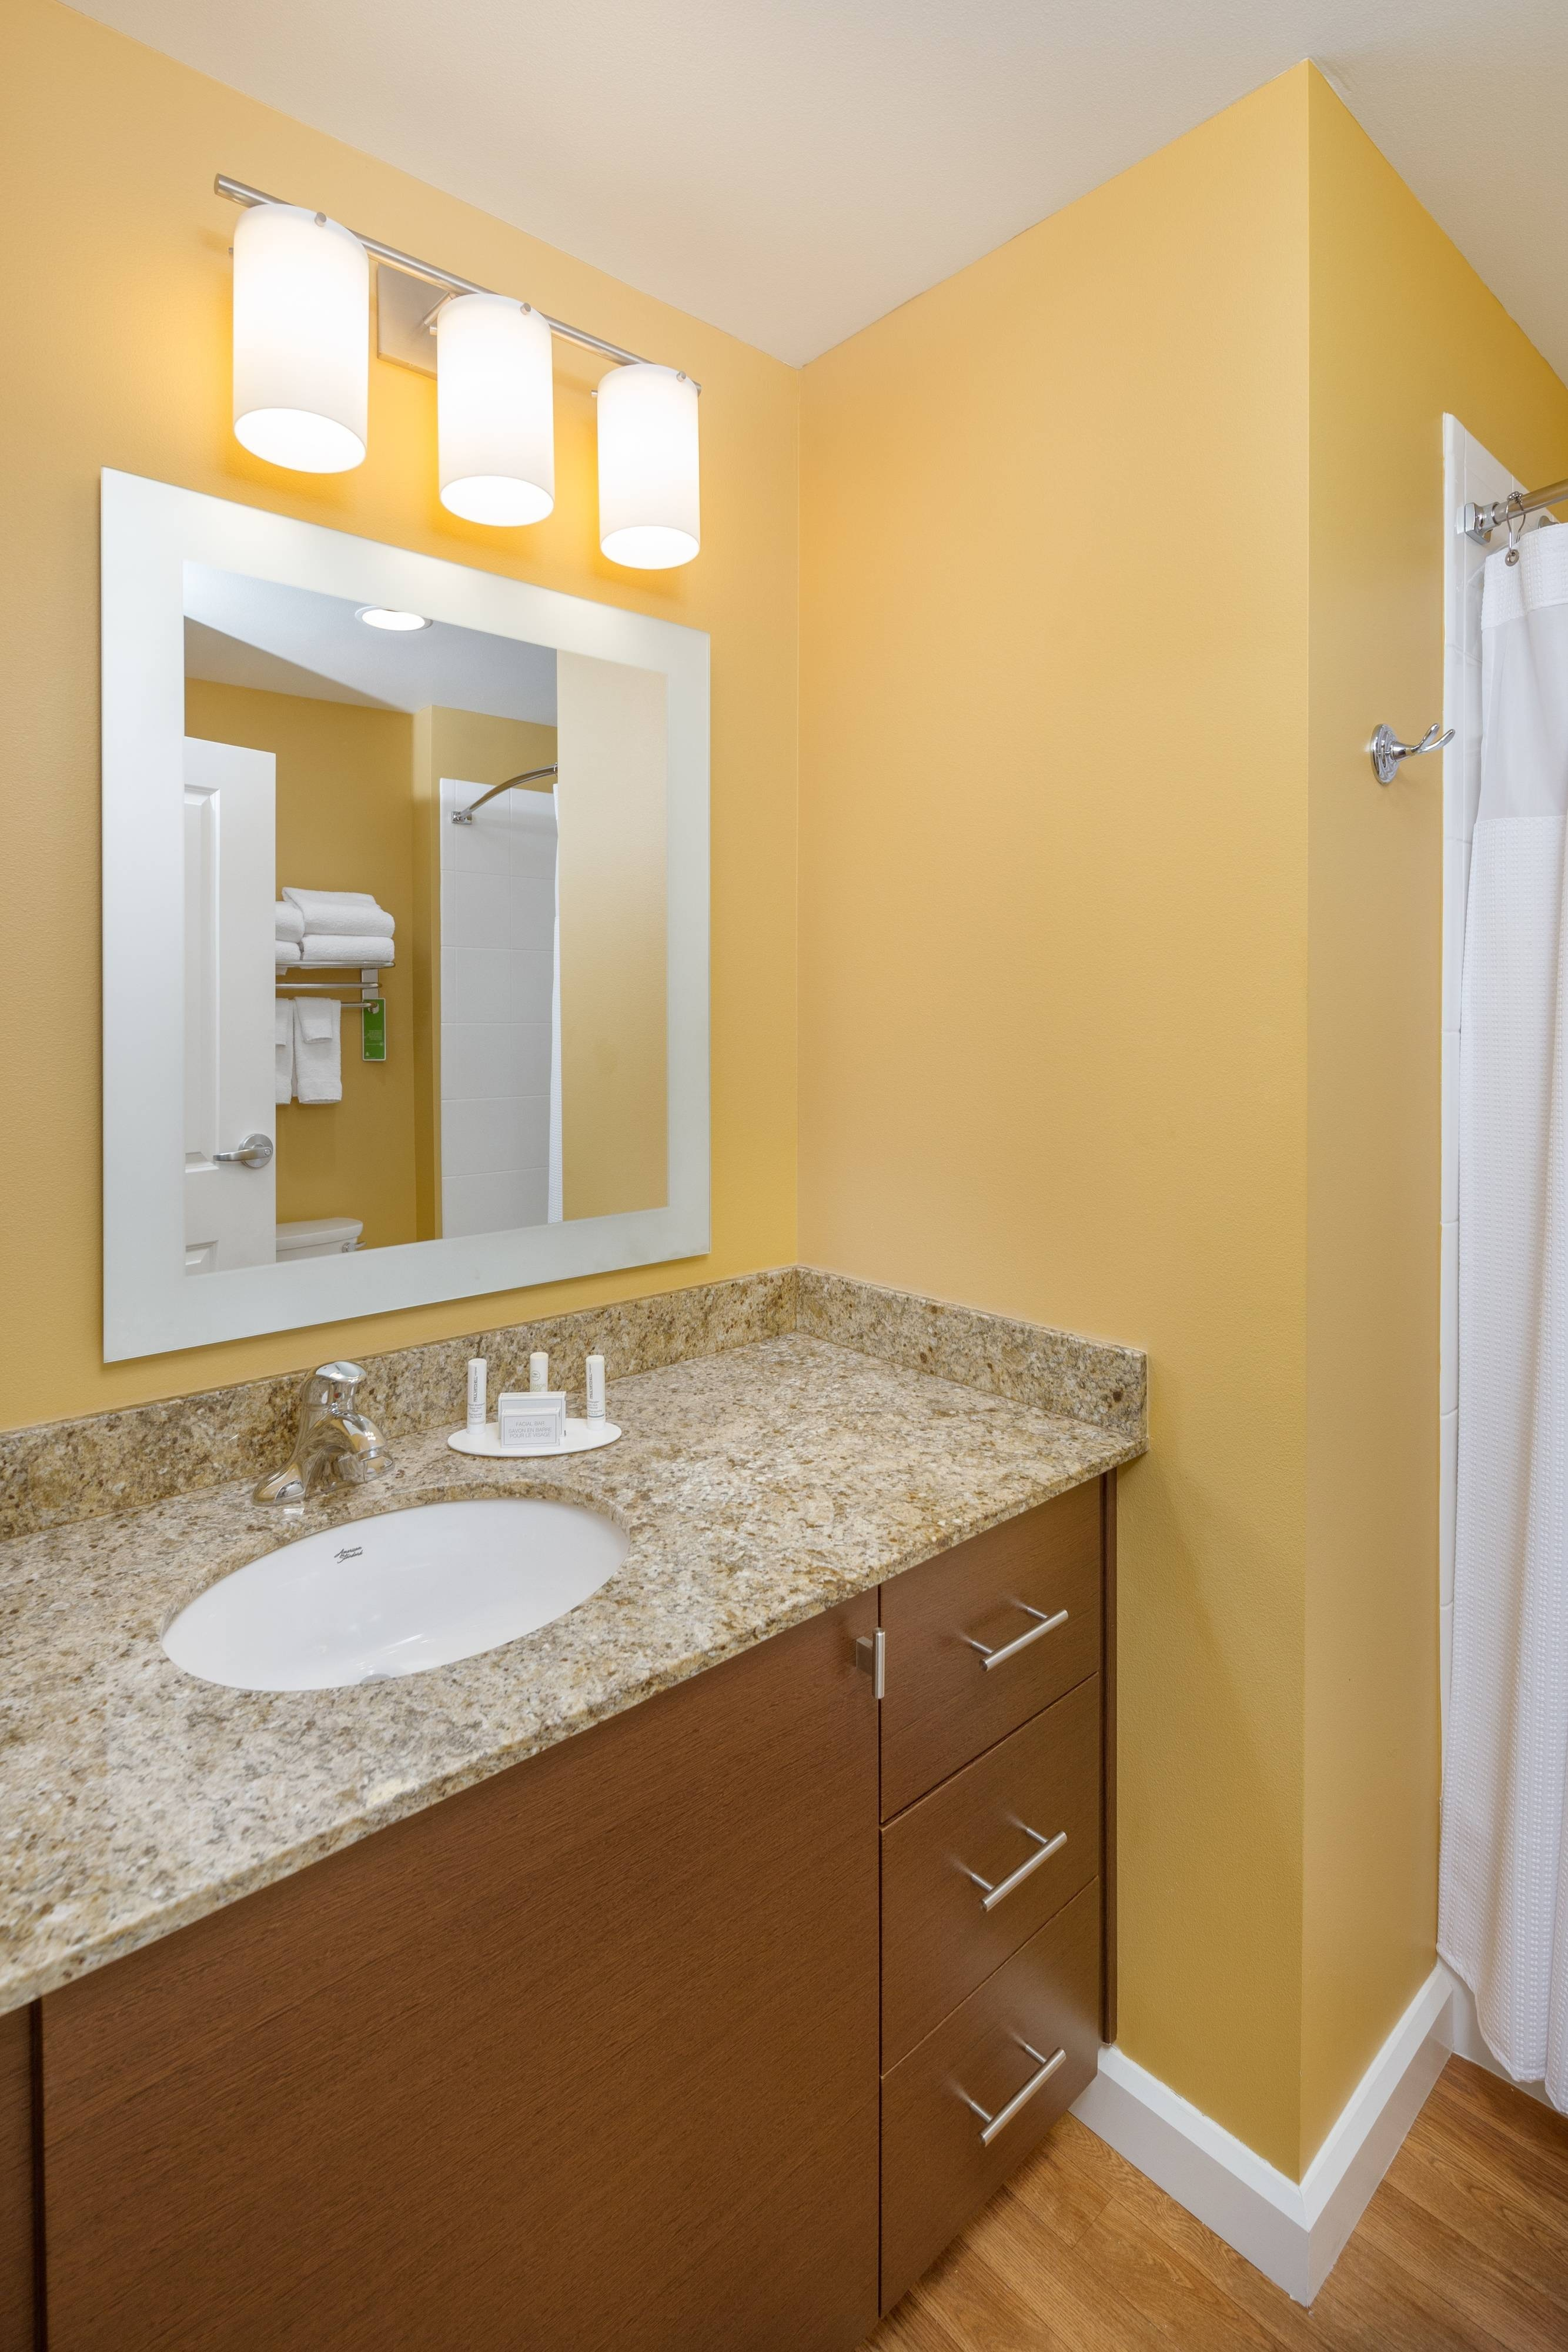 Portland-Vancouver WA extended stay hotel